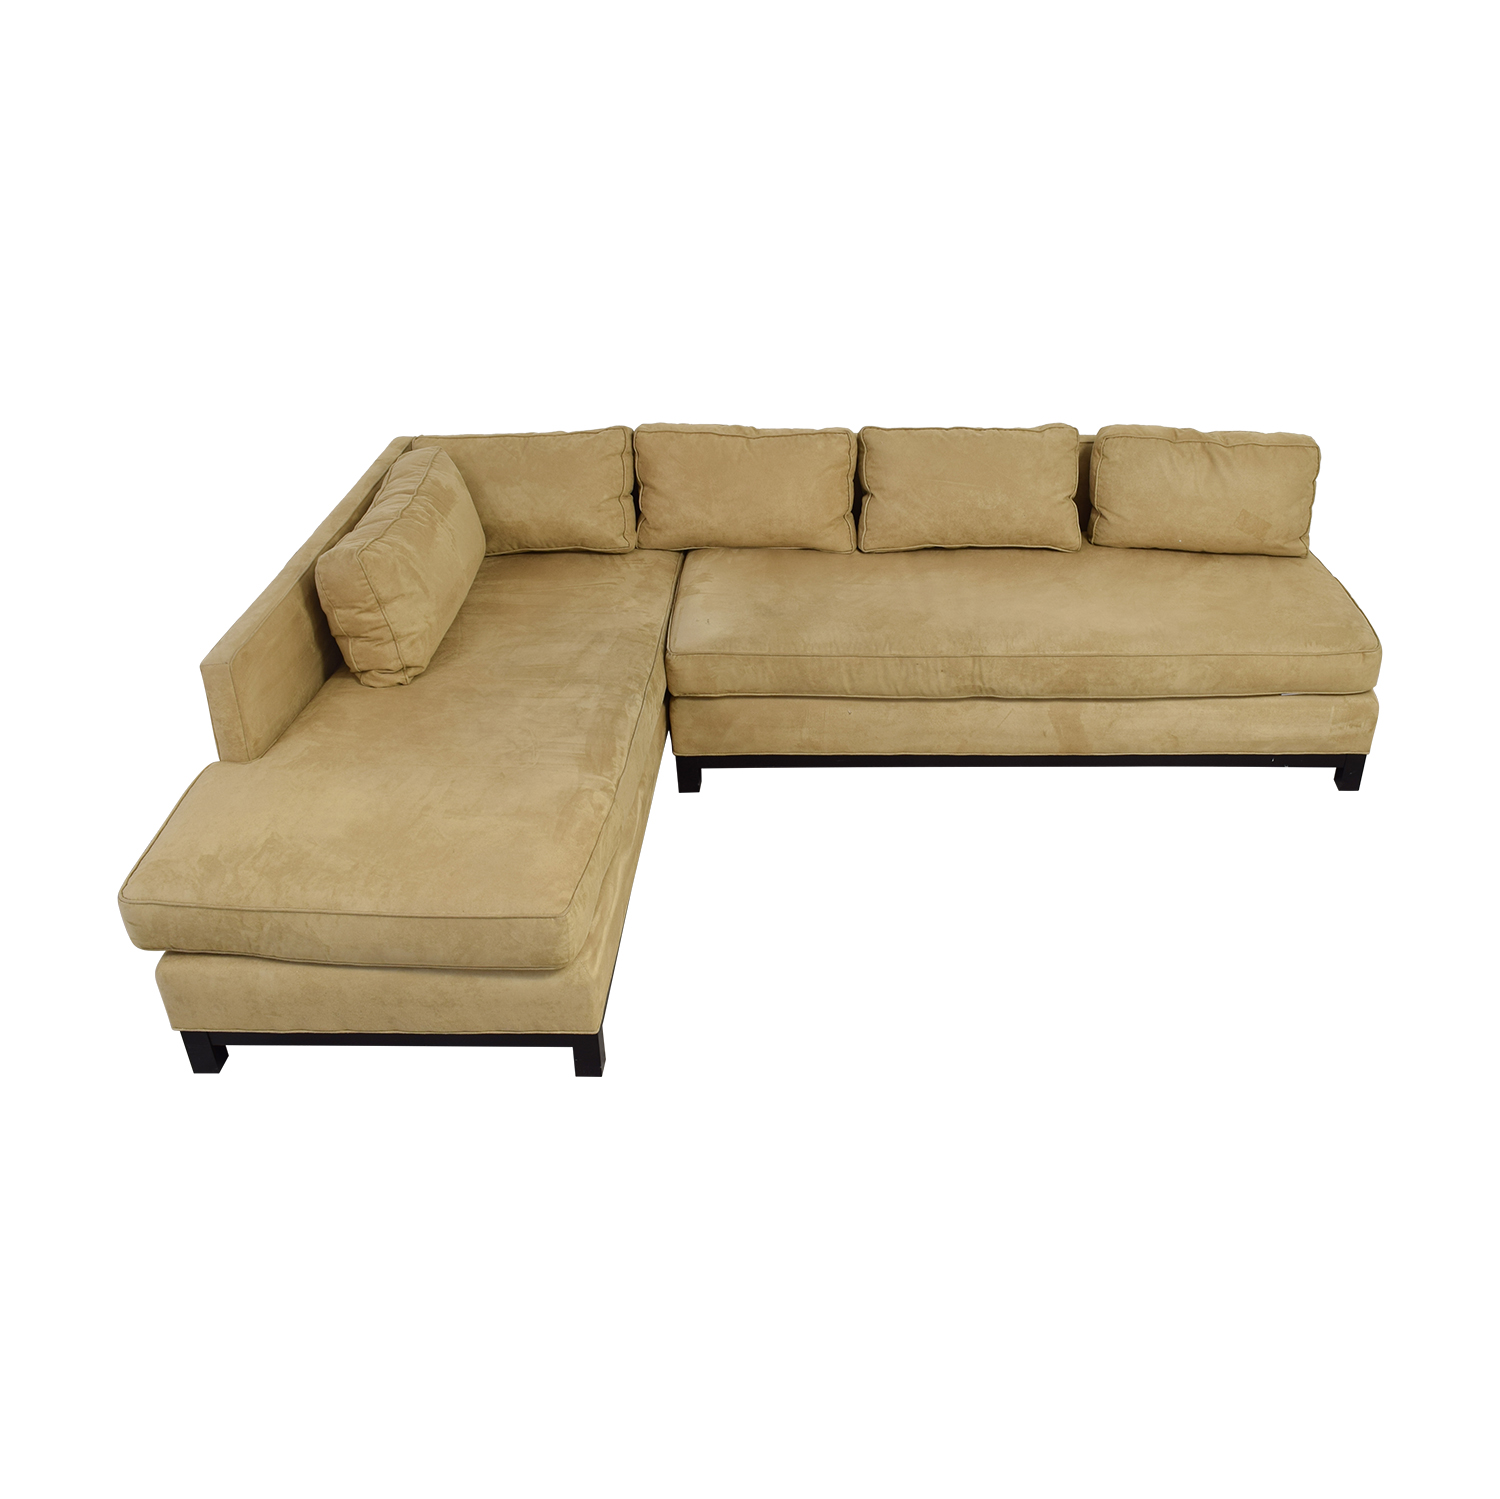 Mitchell Gold + Bob Williams Mitchell Gold + Bob Williams Clifton Beige Chaise Sectional for sale